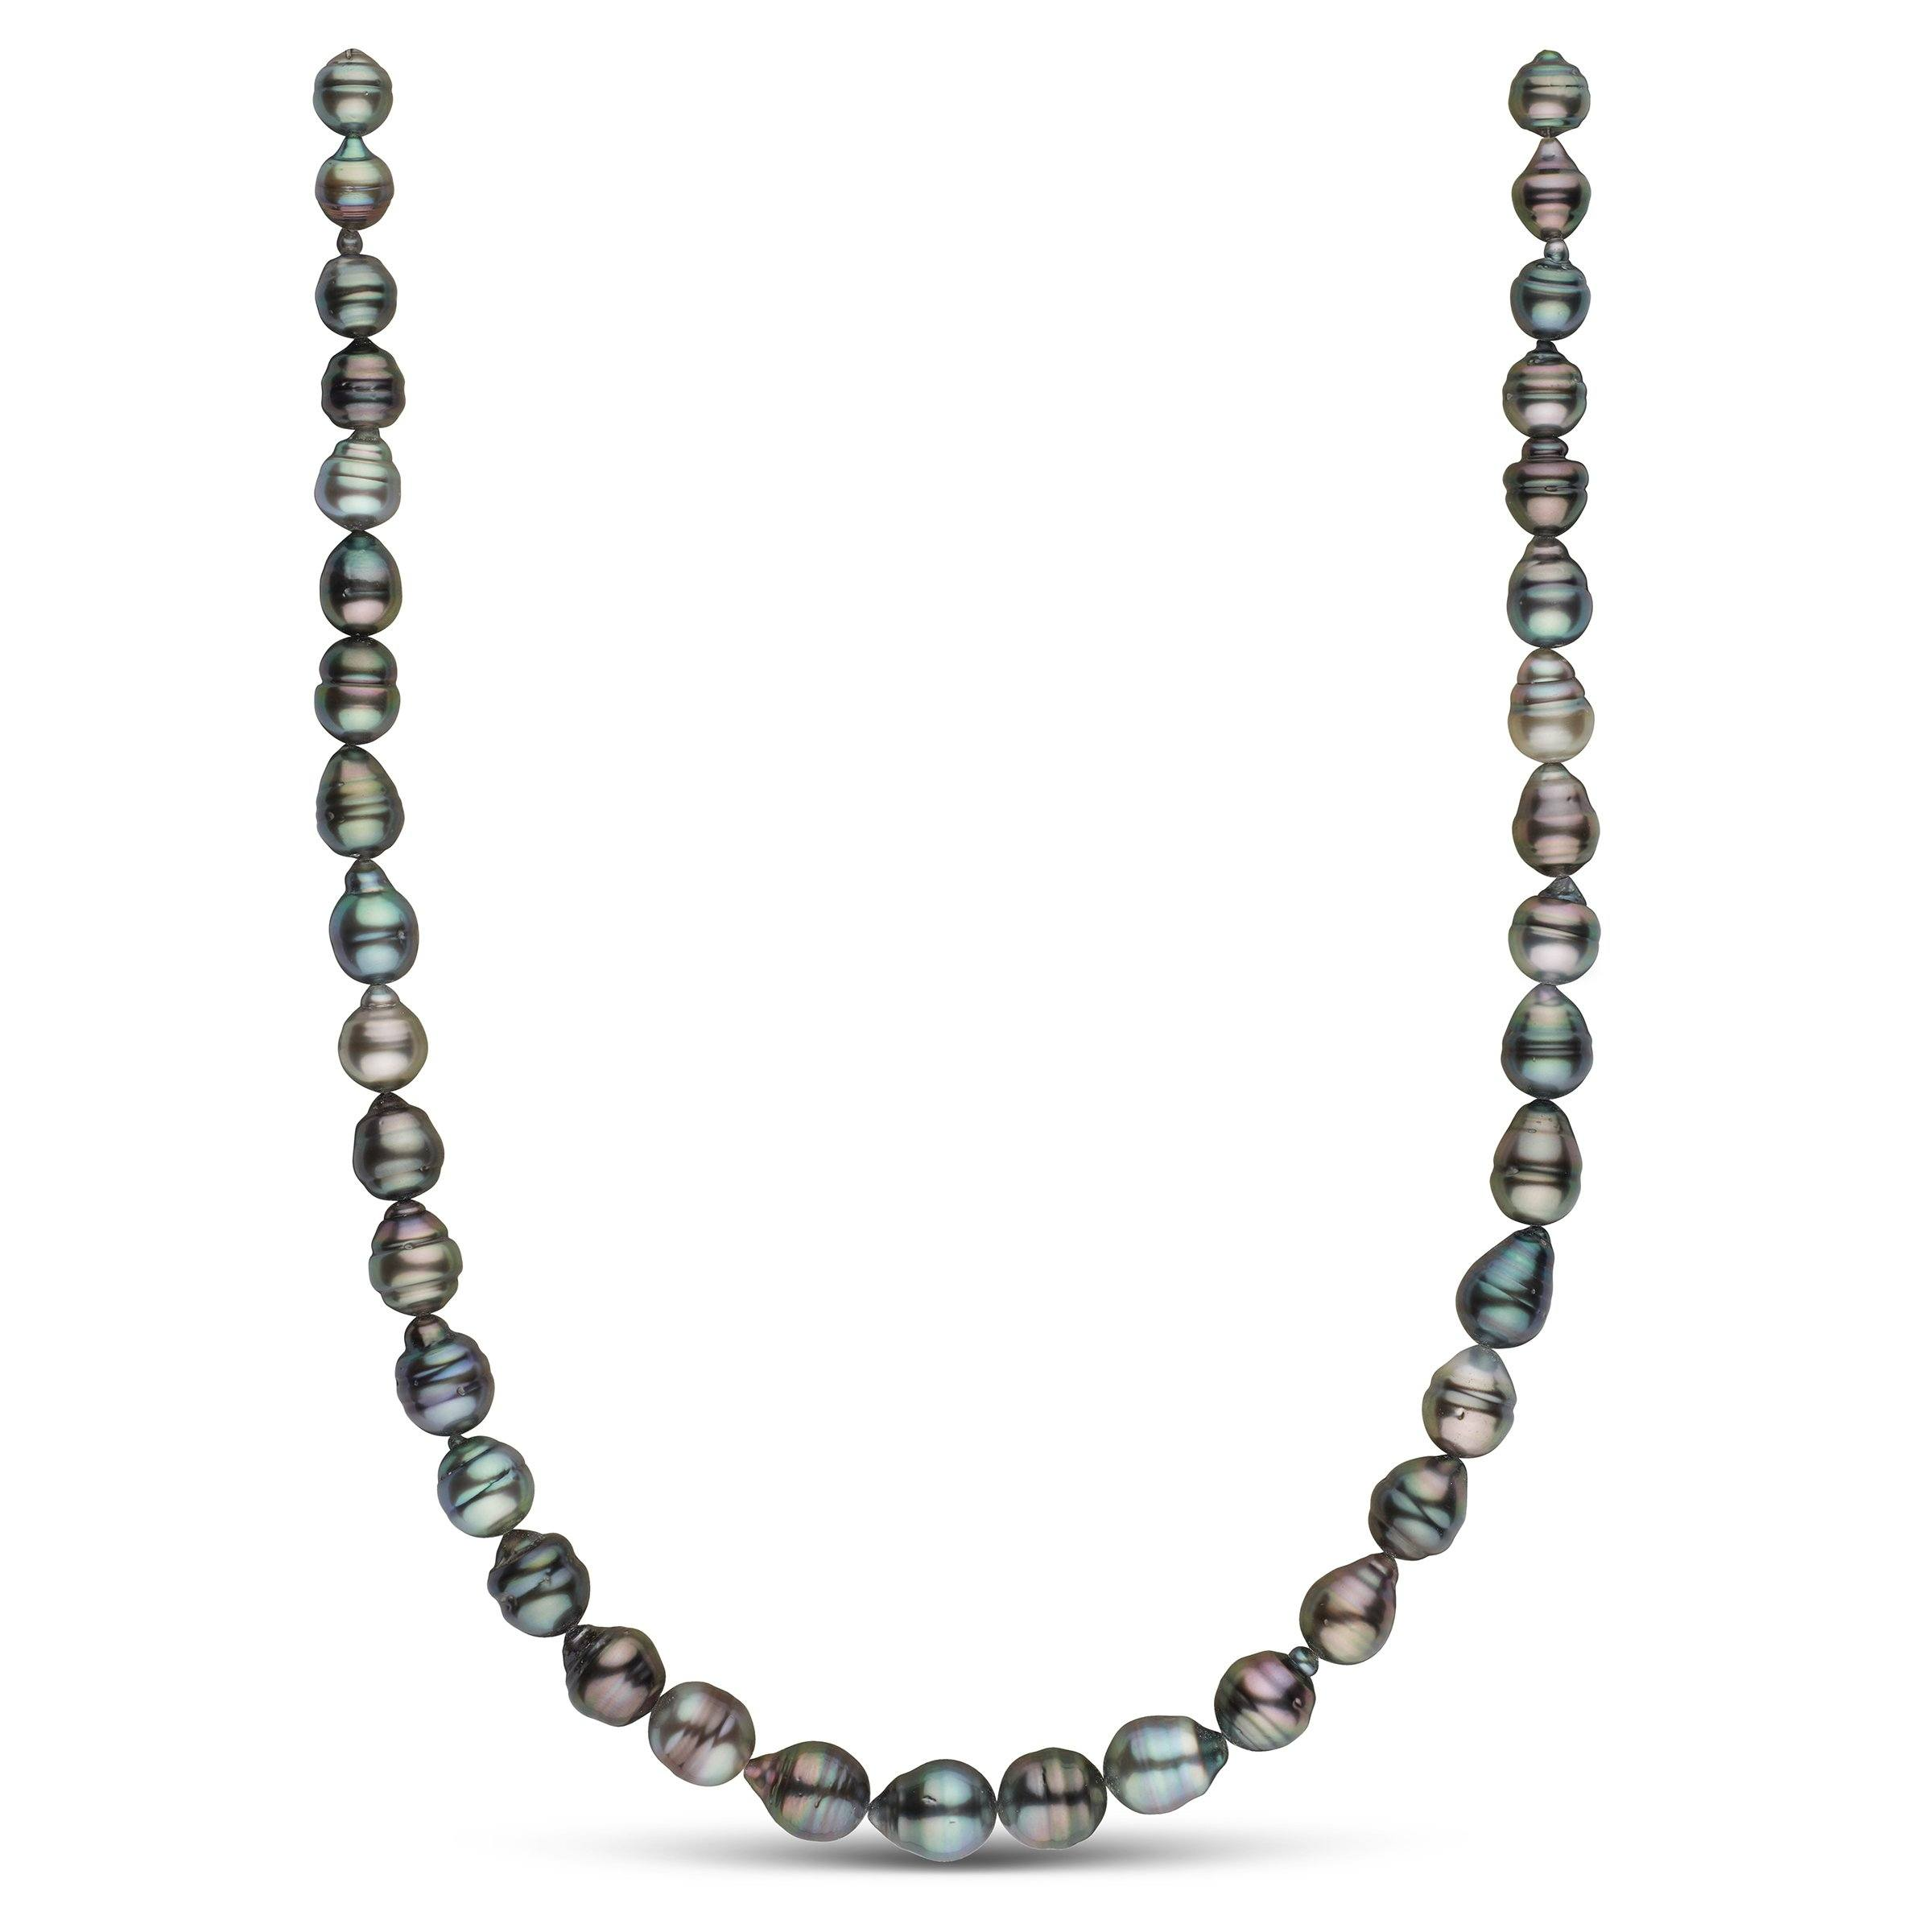 8.2-10.4 mm AA+/AAA Tahitian Baroque Pearl Necklace